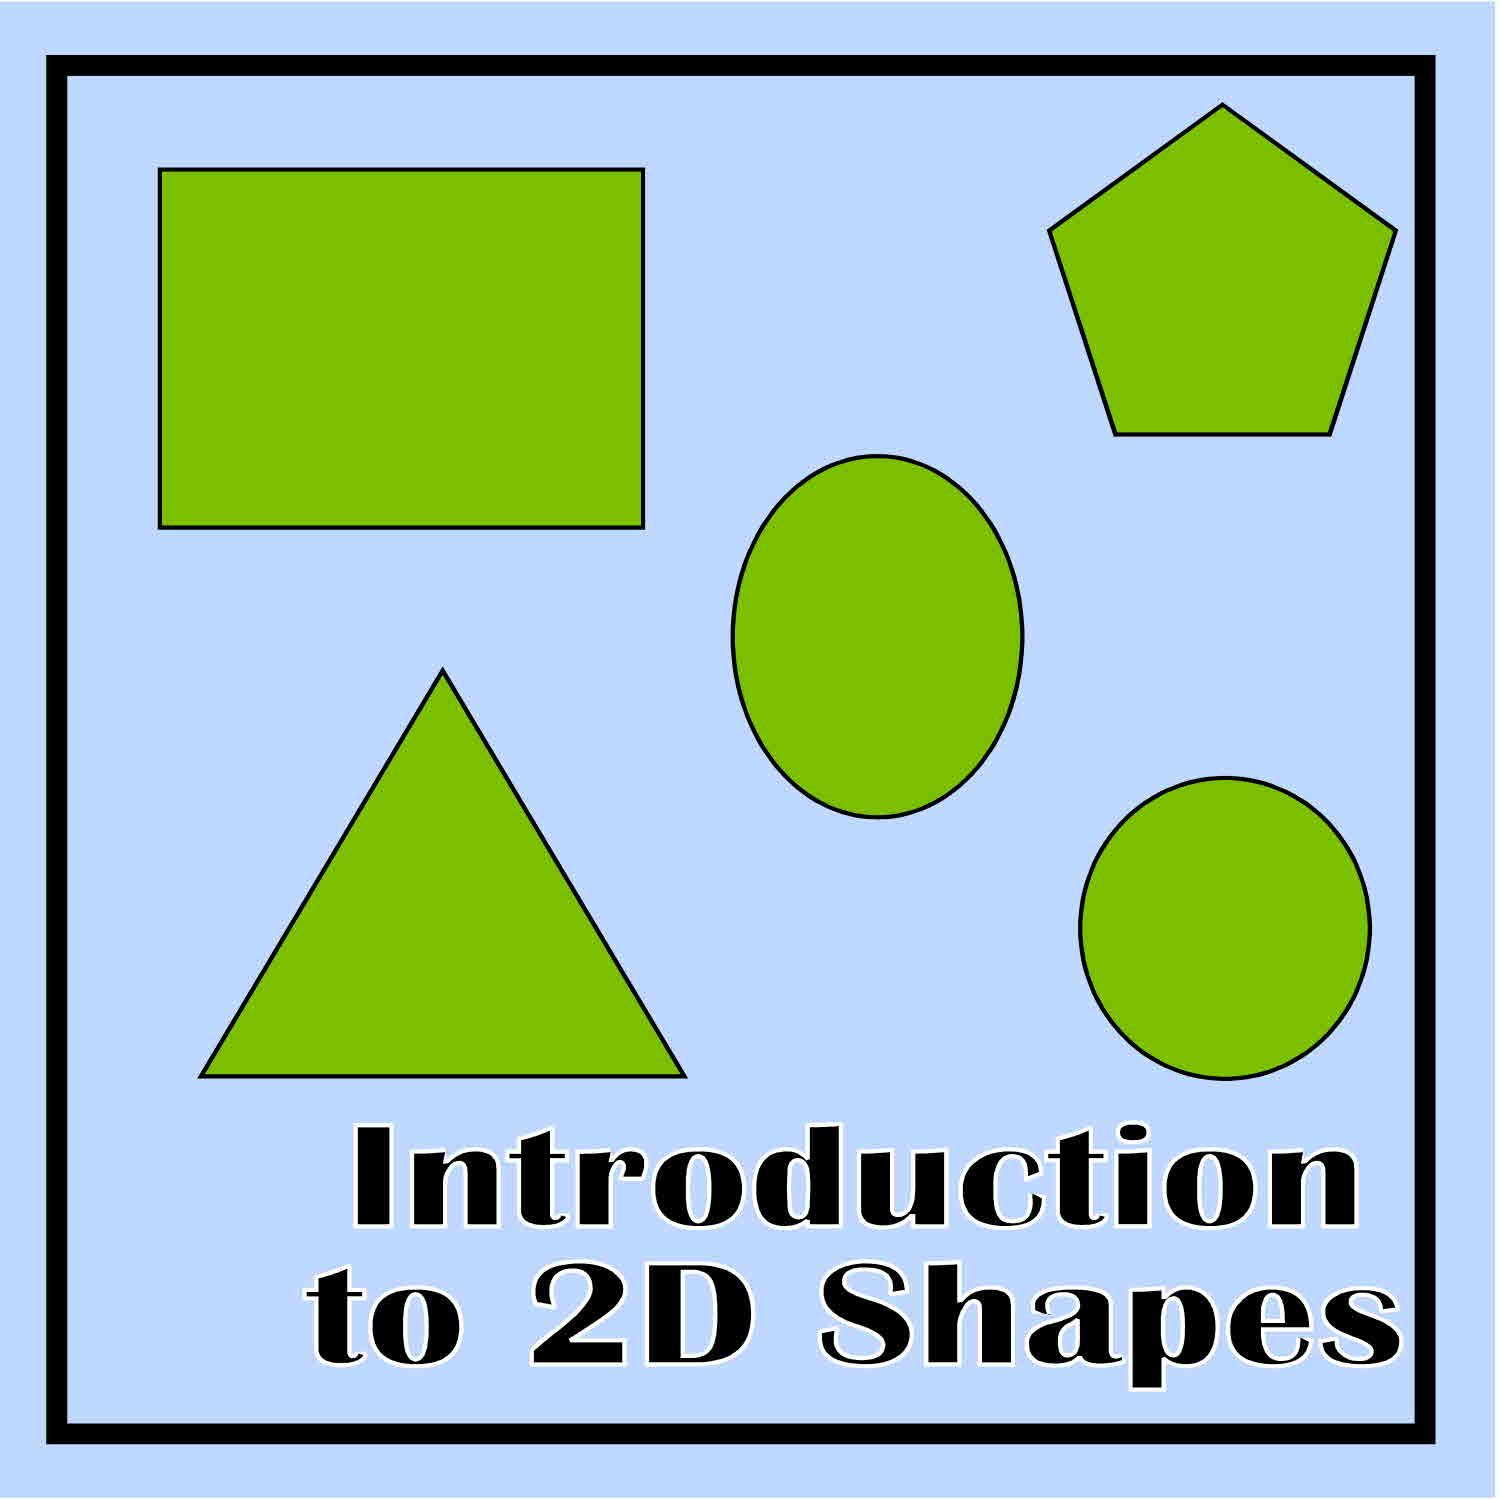 Introduction to 2D Shapes | Geometry activities, Printable shapes and 2d